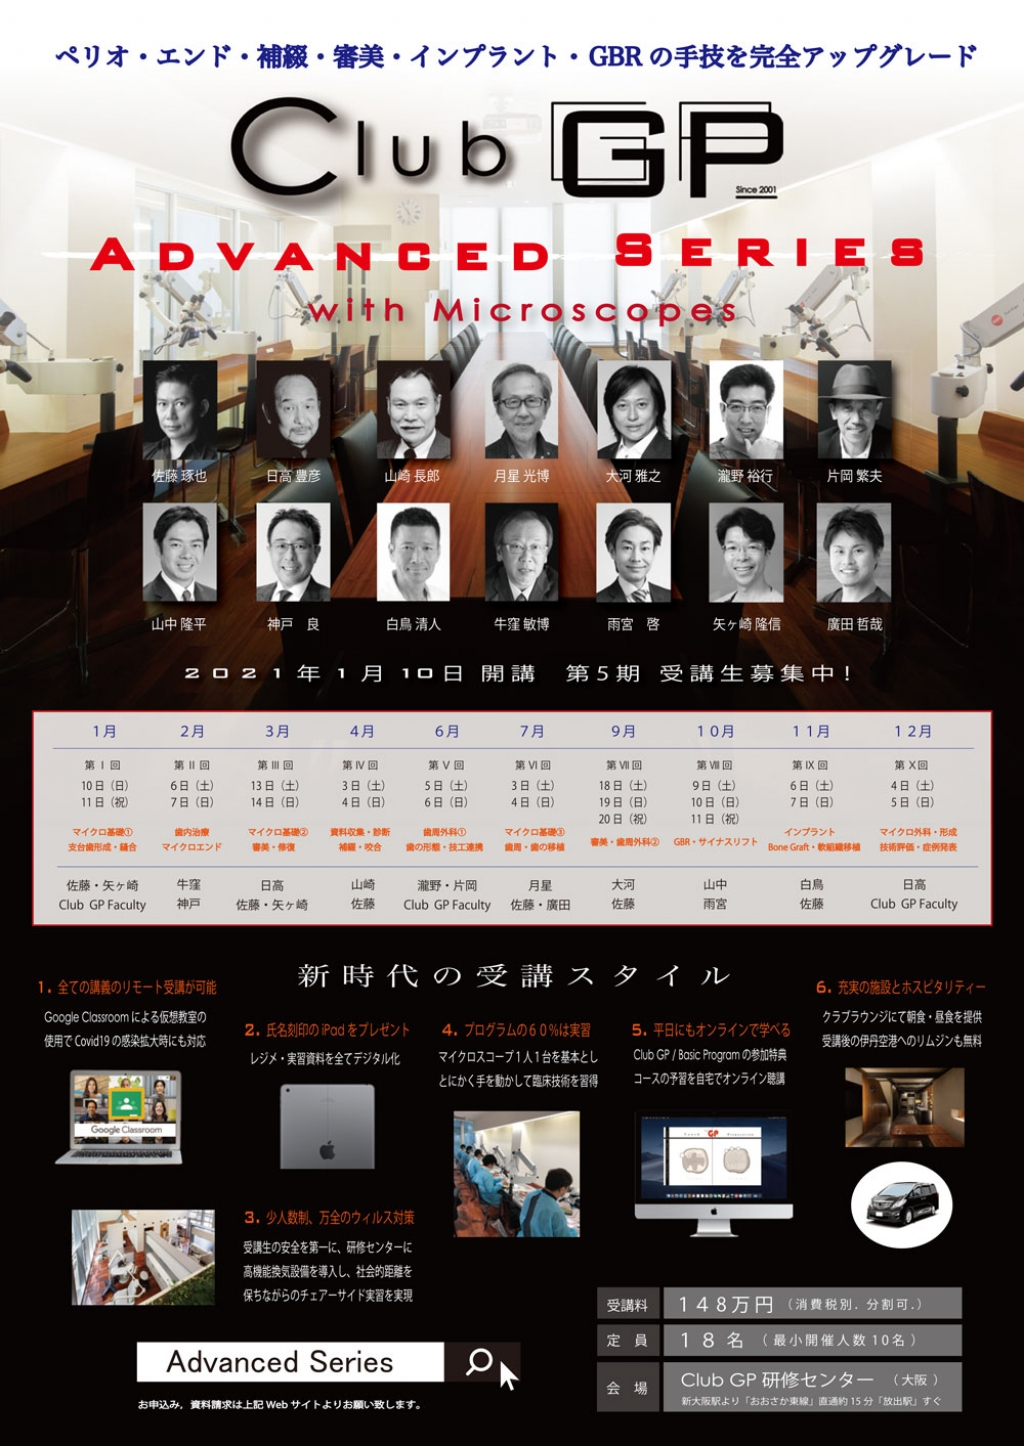 ADVANCED SERIES with Microscopes[22回コース]の画像です